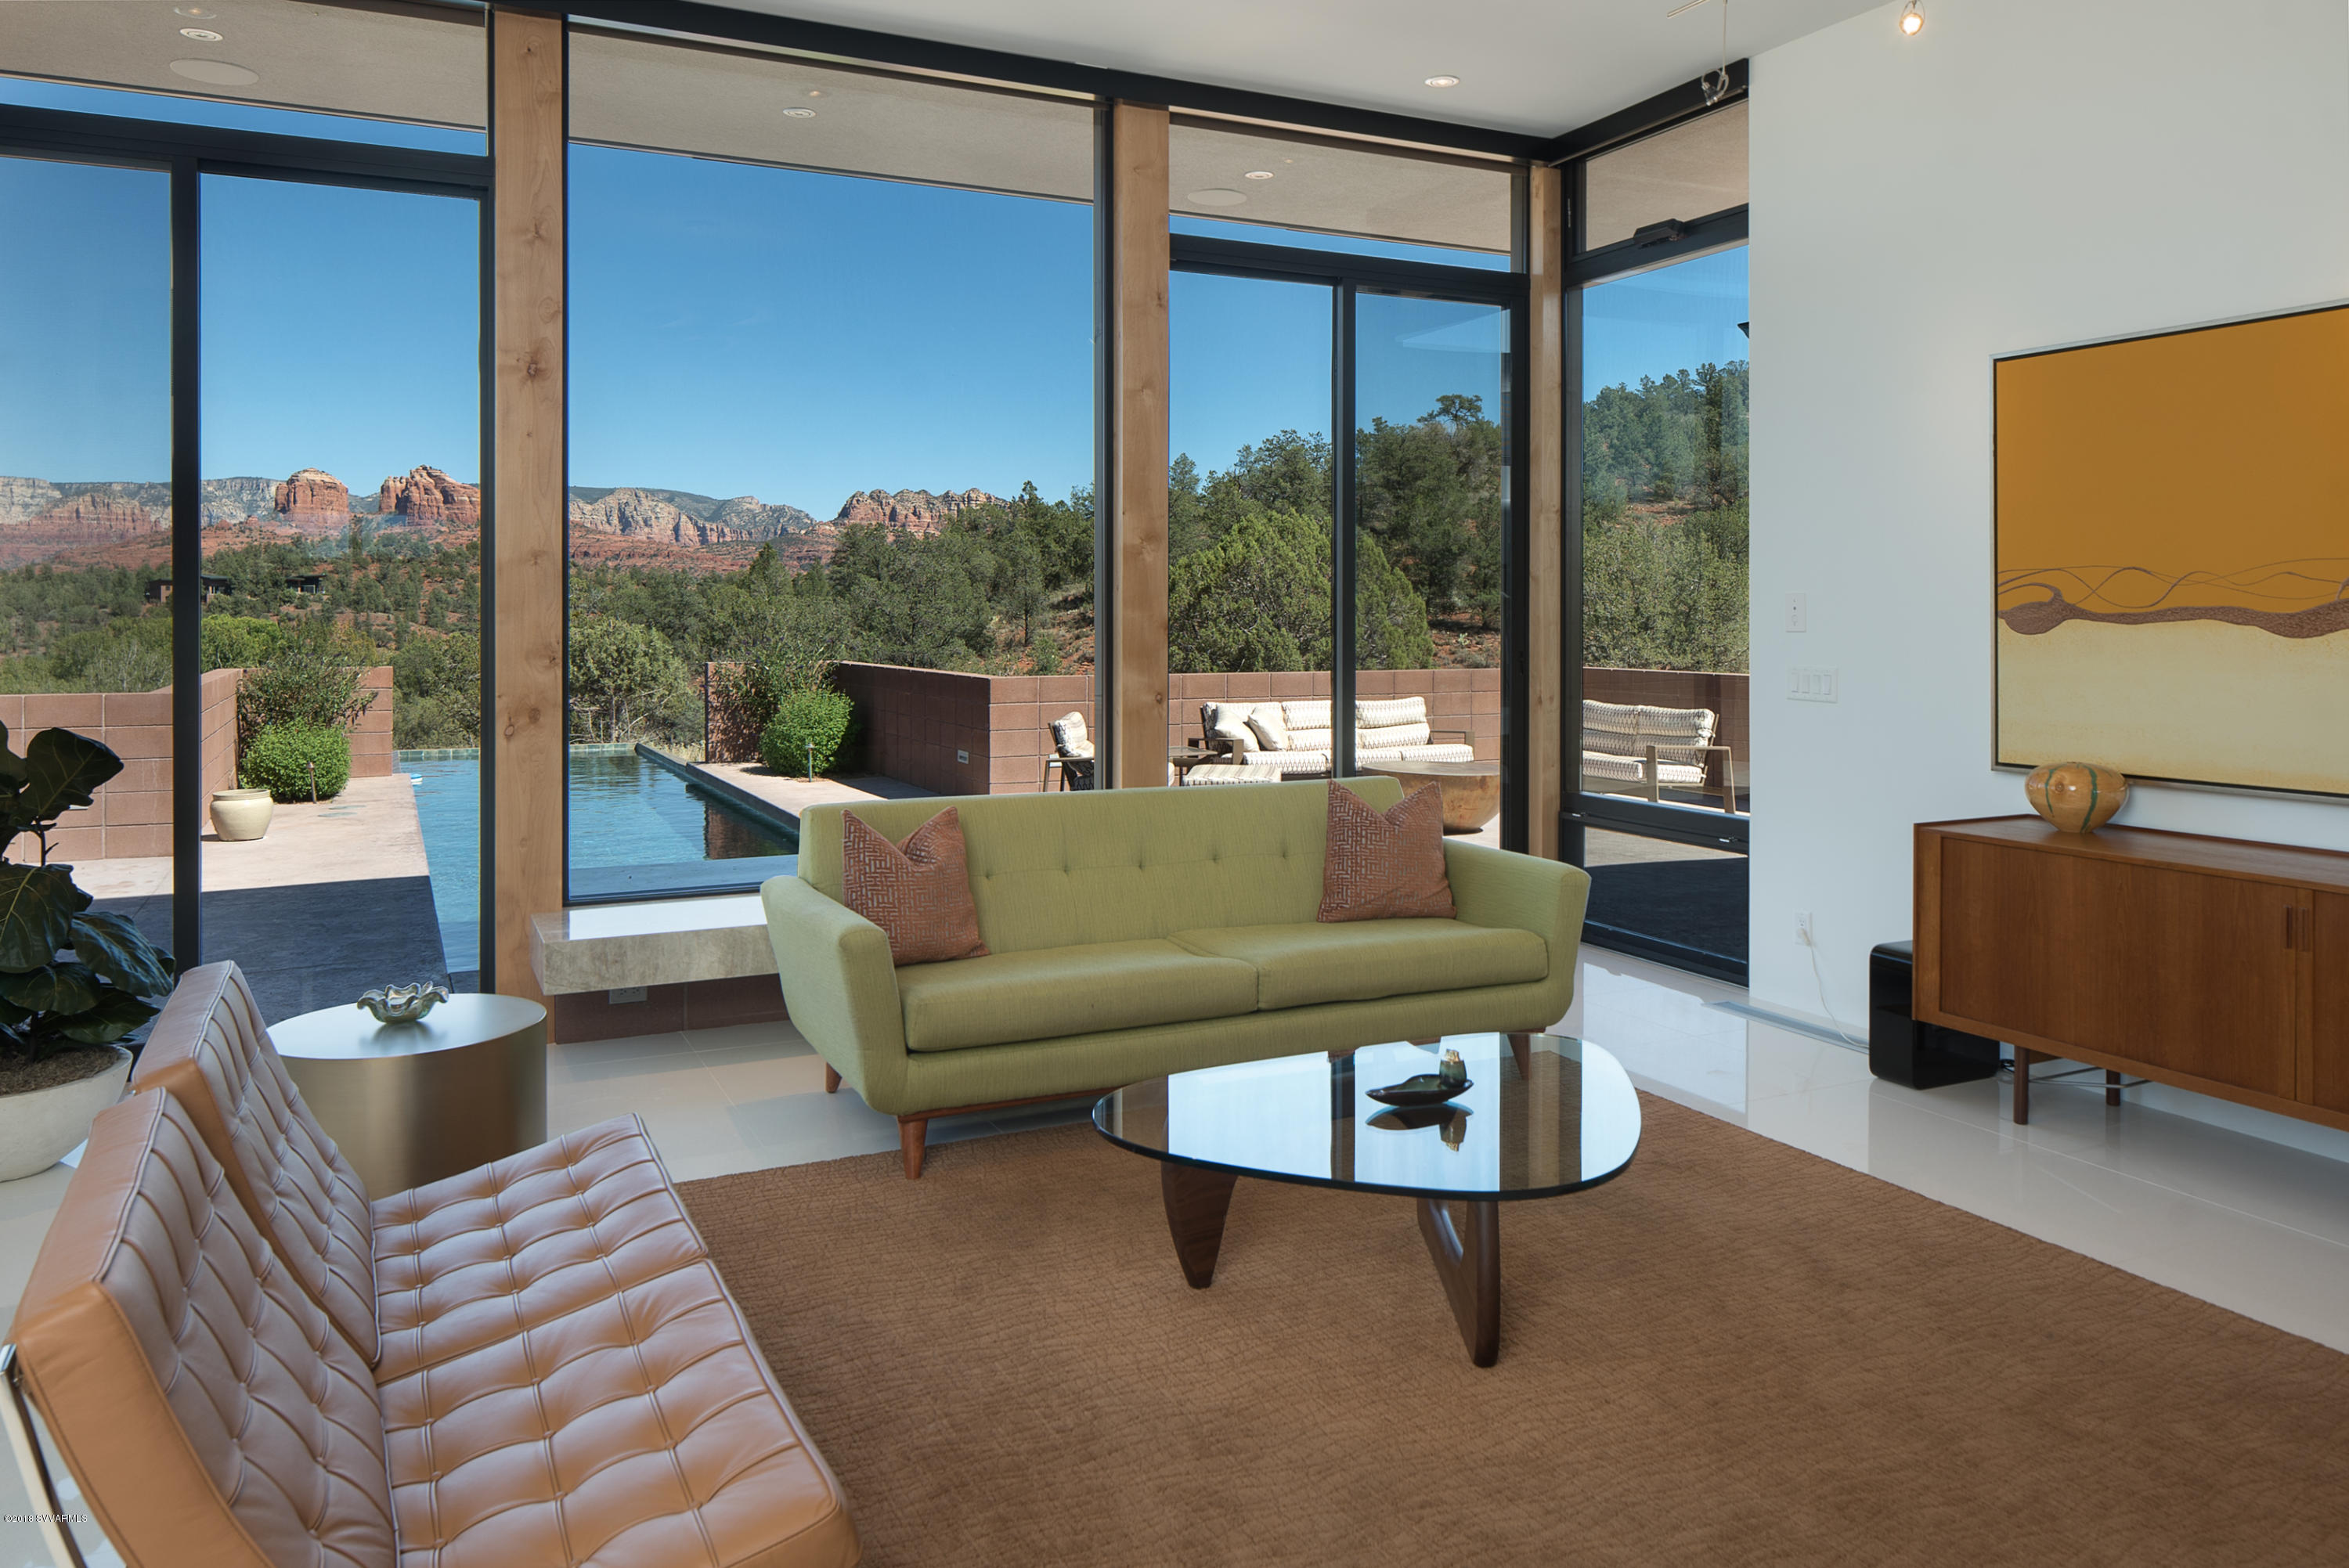 125 Cross Creek Circle Sedona, AZ 86336